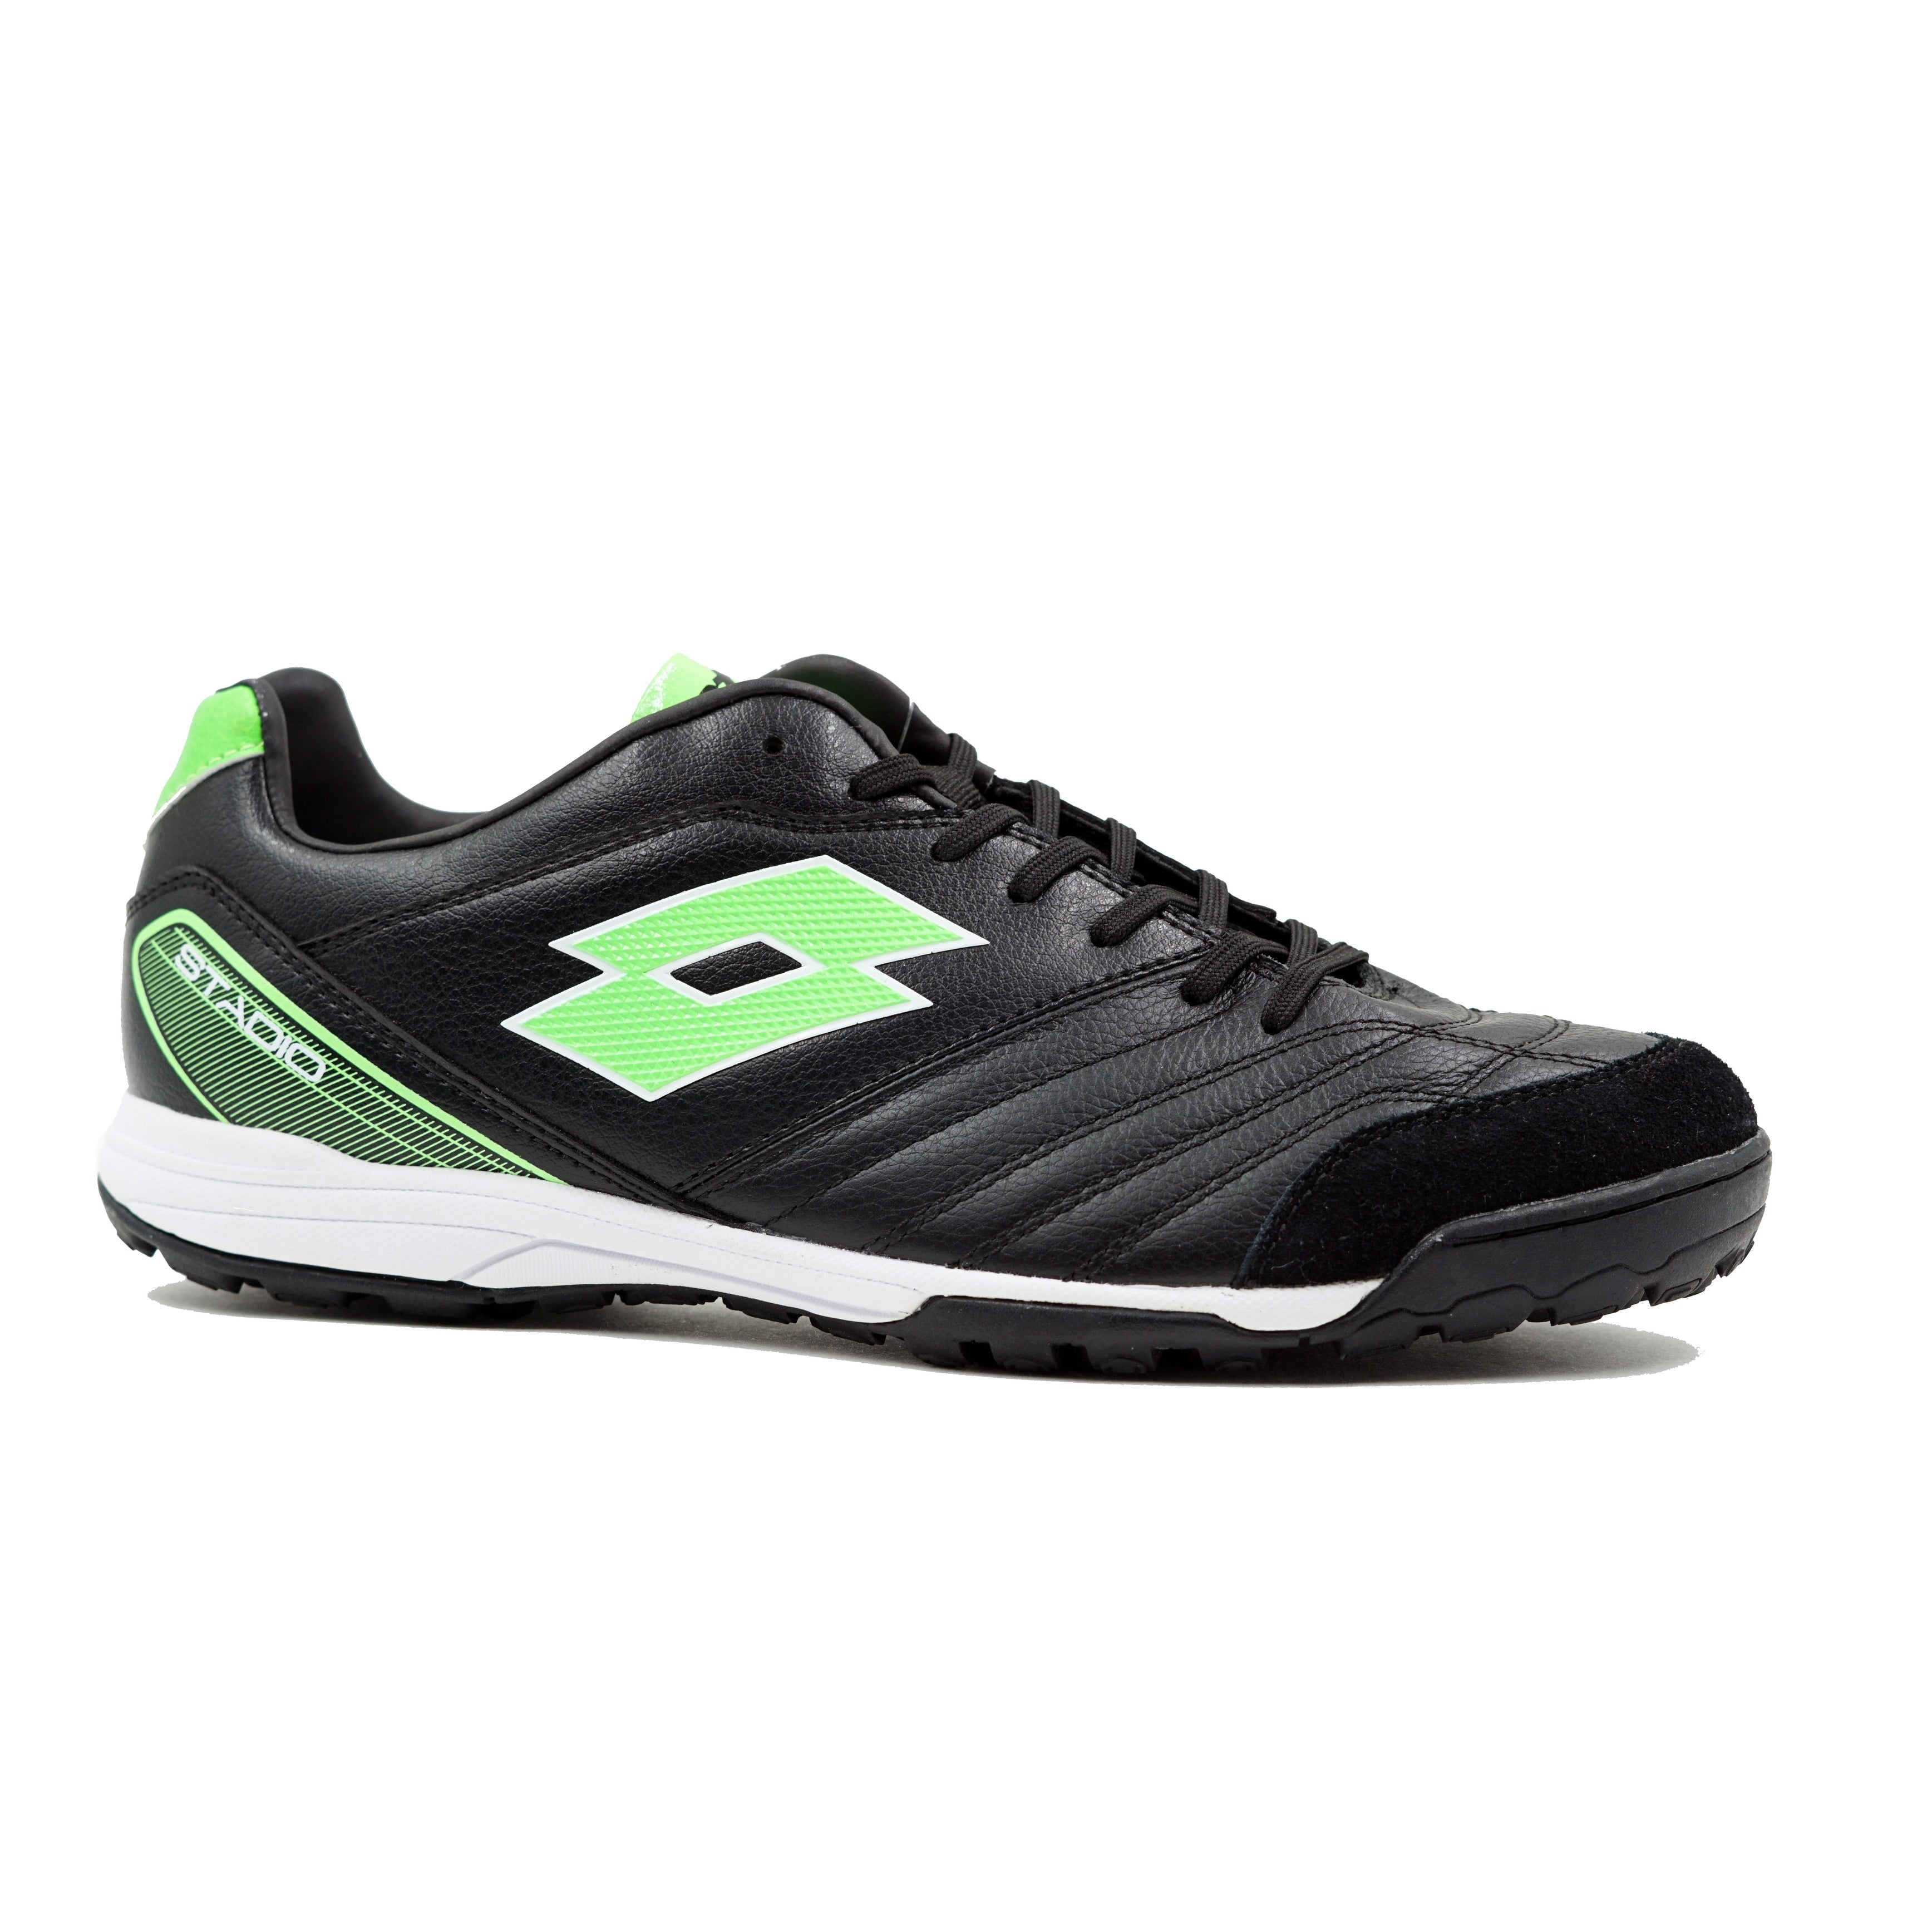 Buy Size 10 Lotto Men's Athletic Shoes Online at Overstock